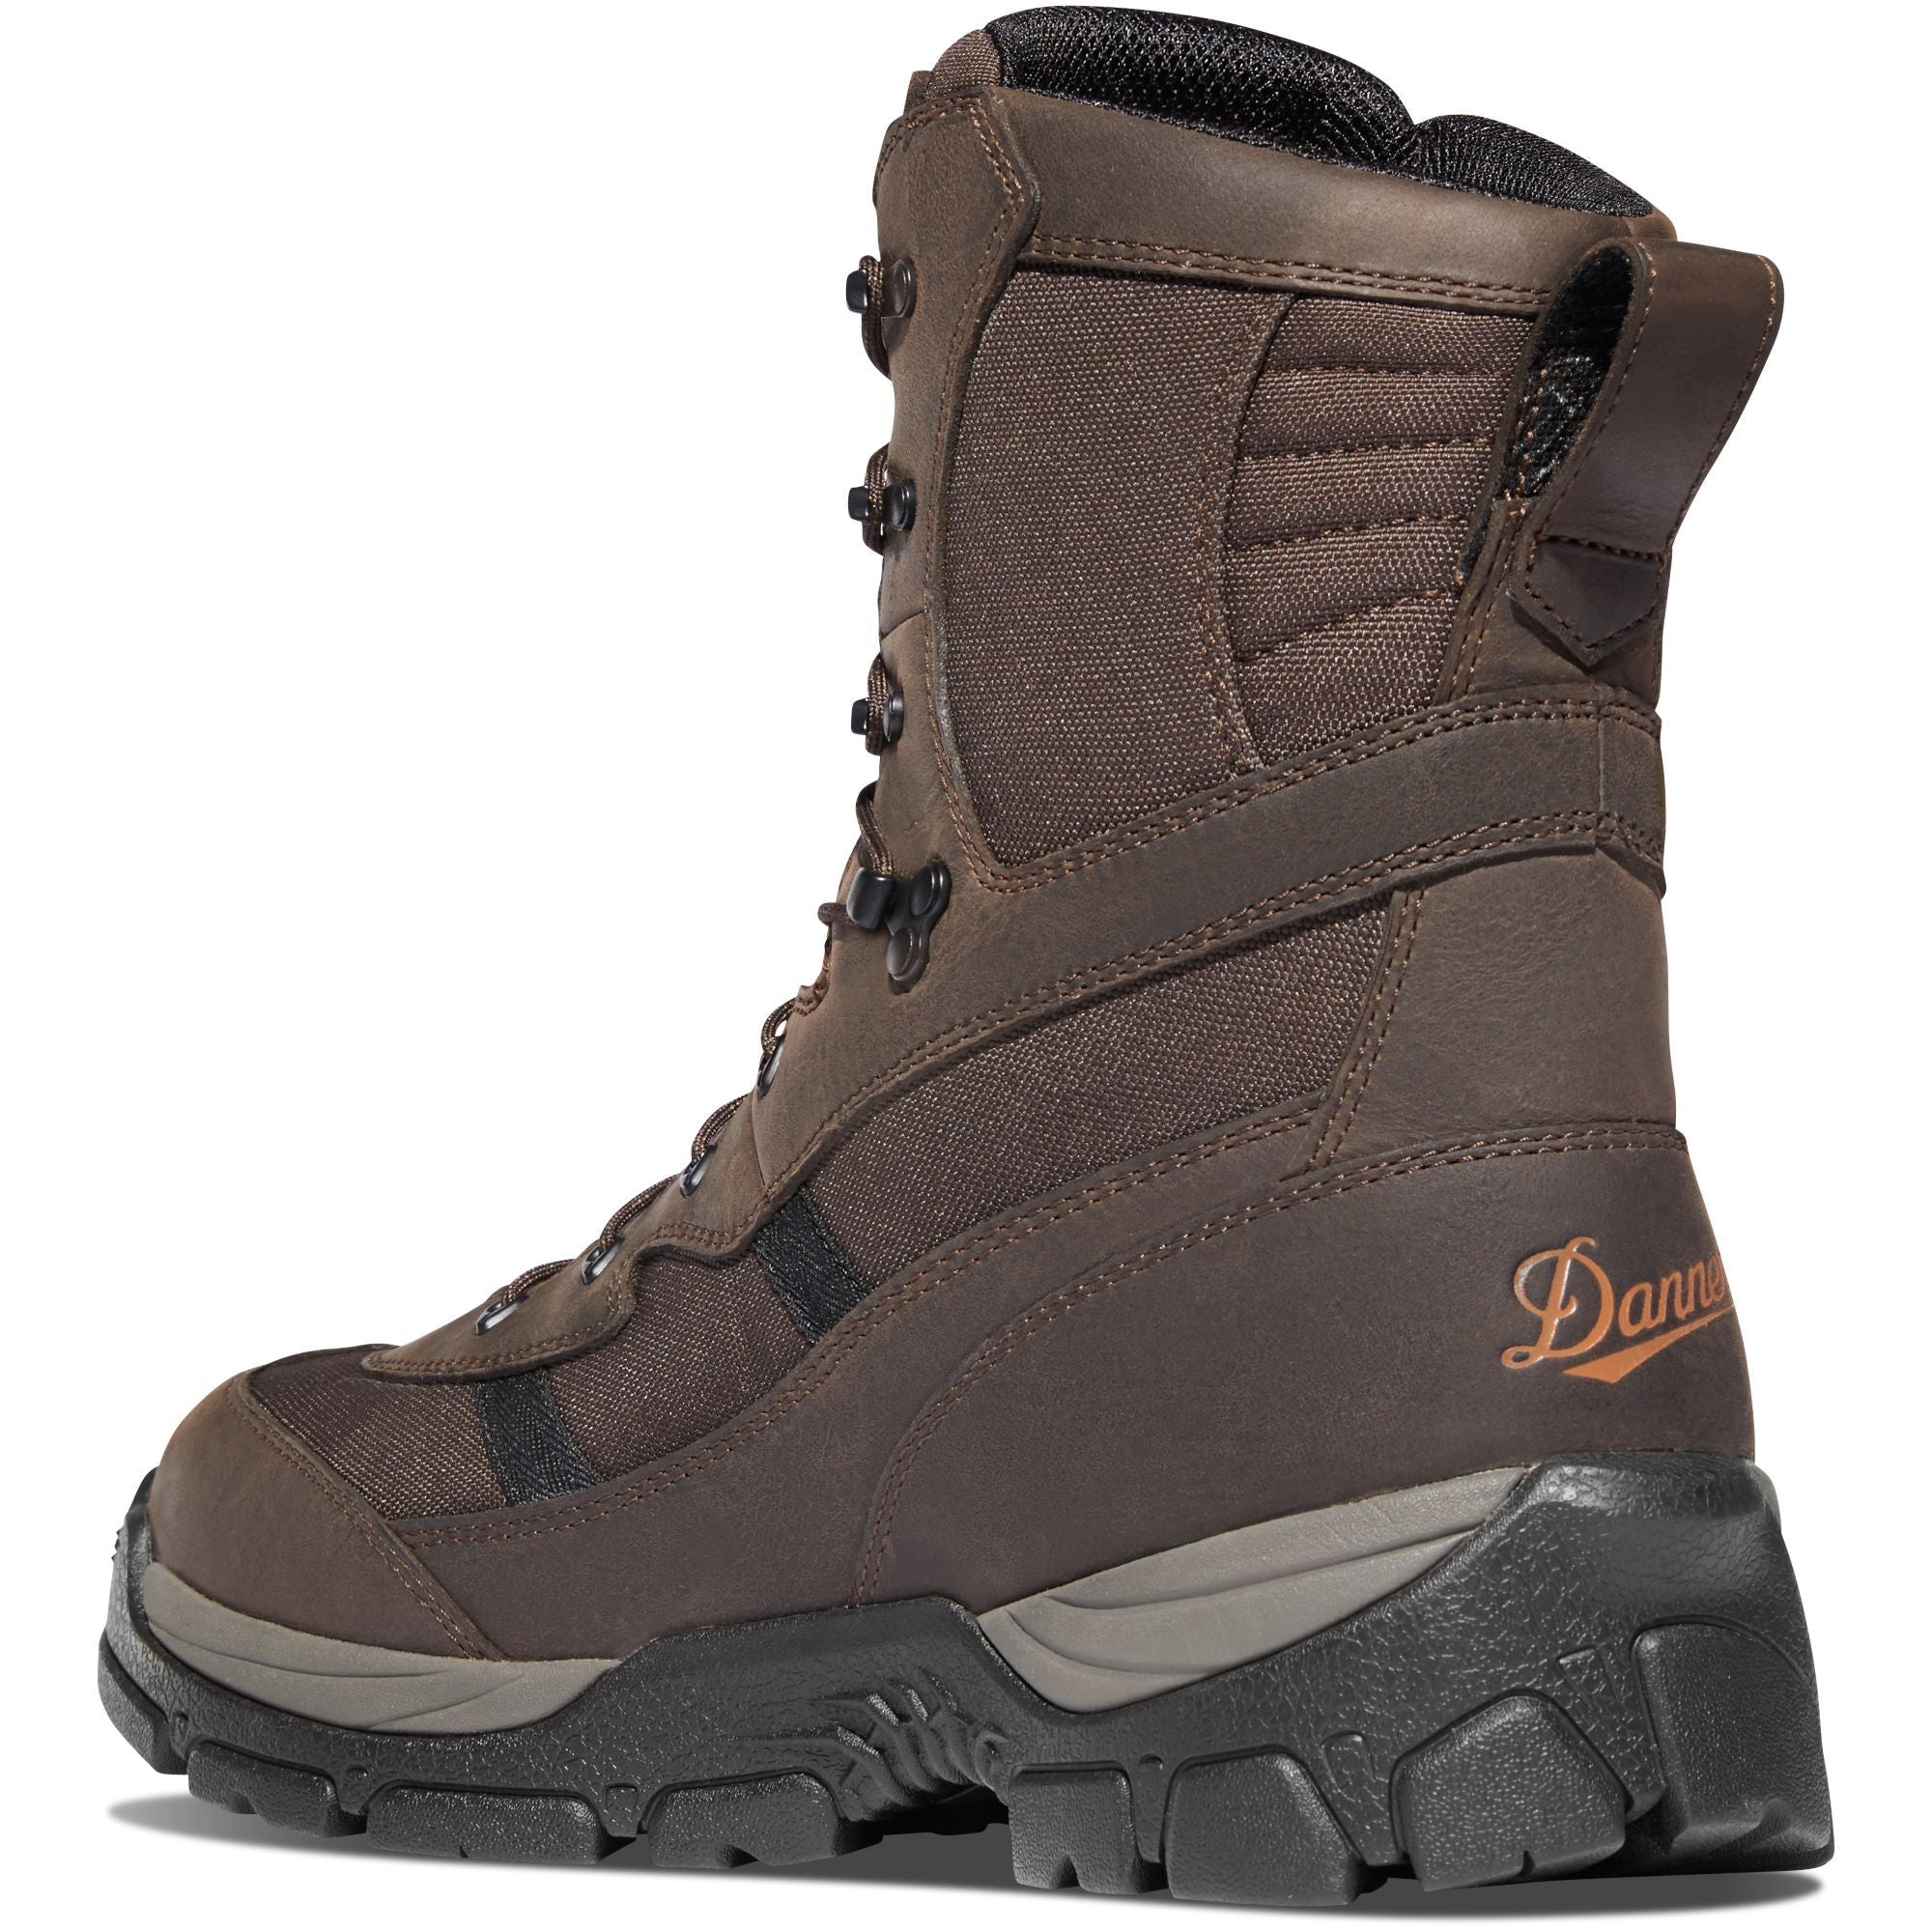 96ca69da3 8 inch – Page 9 – Overlook Boots